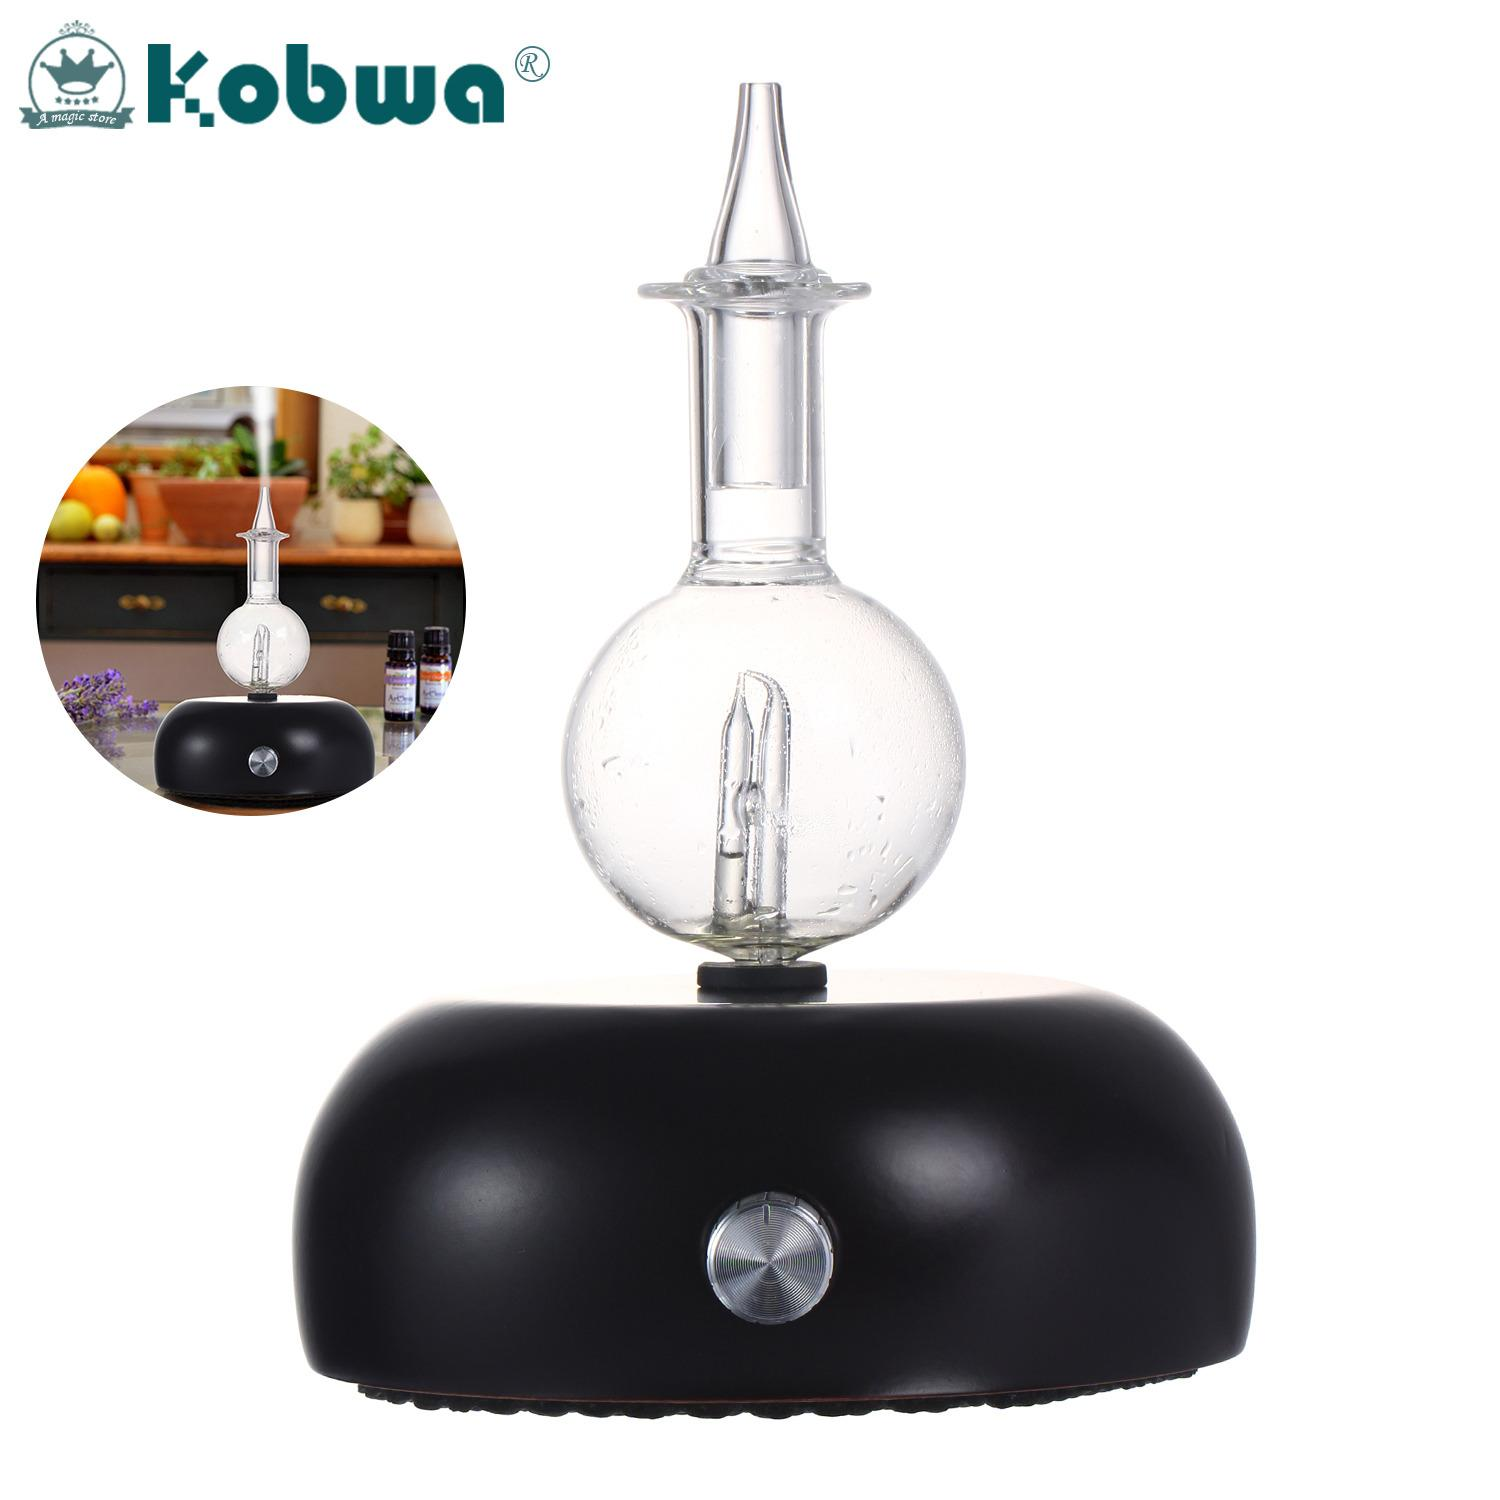 Kobwa Nebulizing Pure Essential Oil Aromatherapy Diffuser, Ultrasonic Aroma Scent Nebulizer With Auto Shut Off/ 7-Colors LED Light, Perfect For Spa/ Home/ Office (Glass Reservoir+ Wood Base),EU Plug - intl